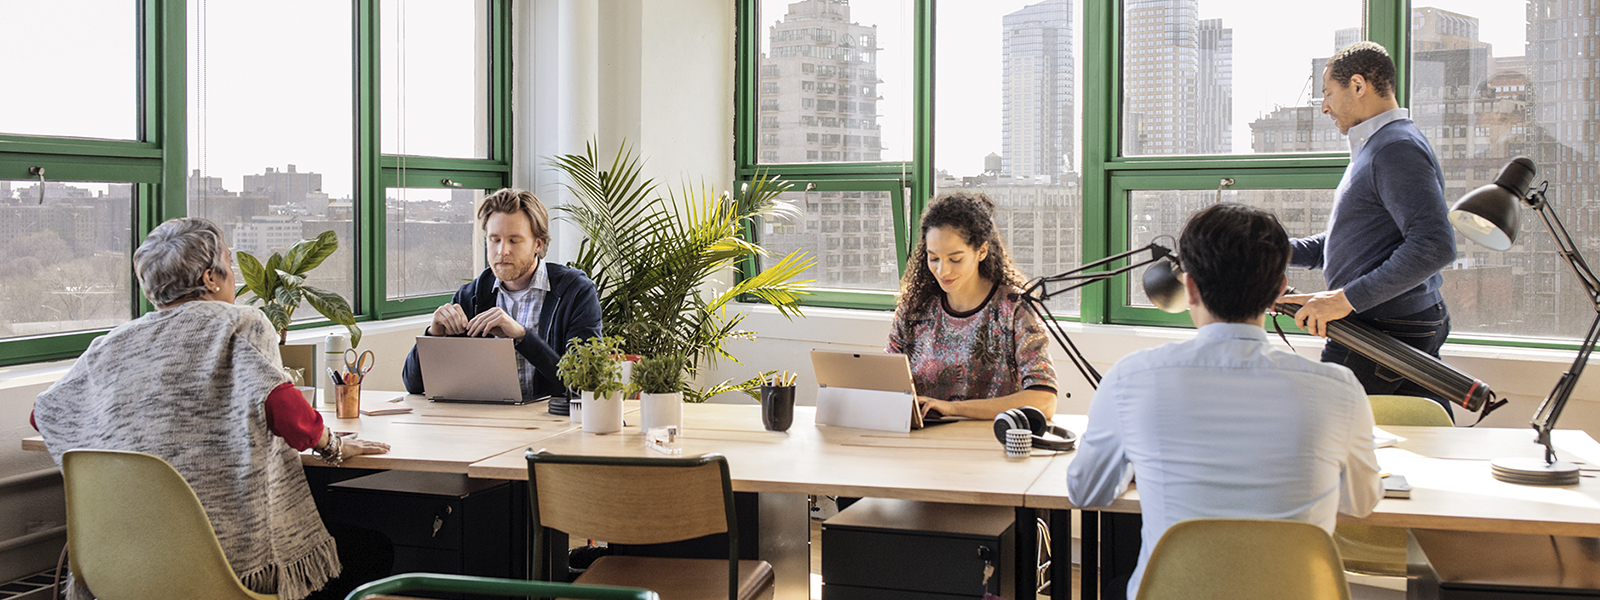 Group of people working in an office.